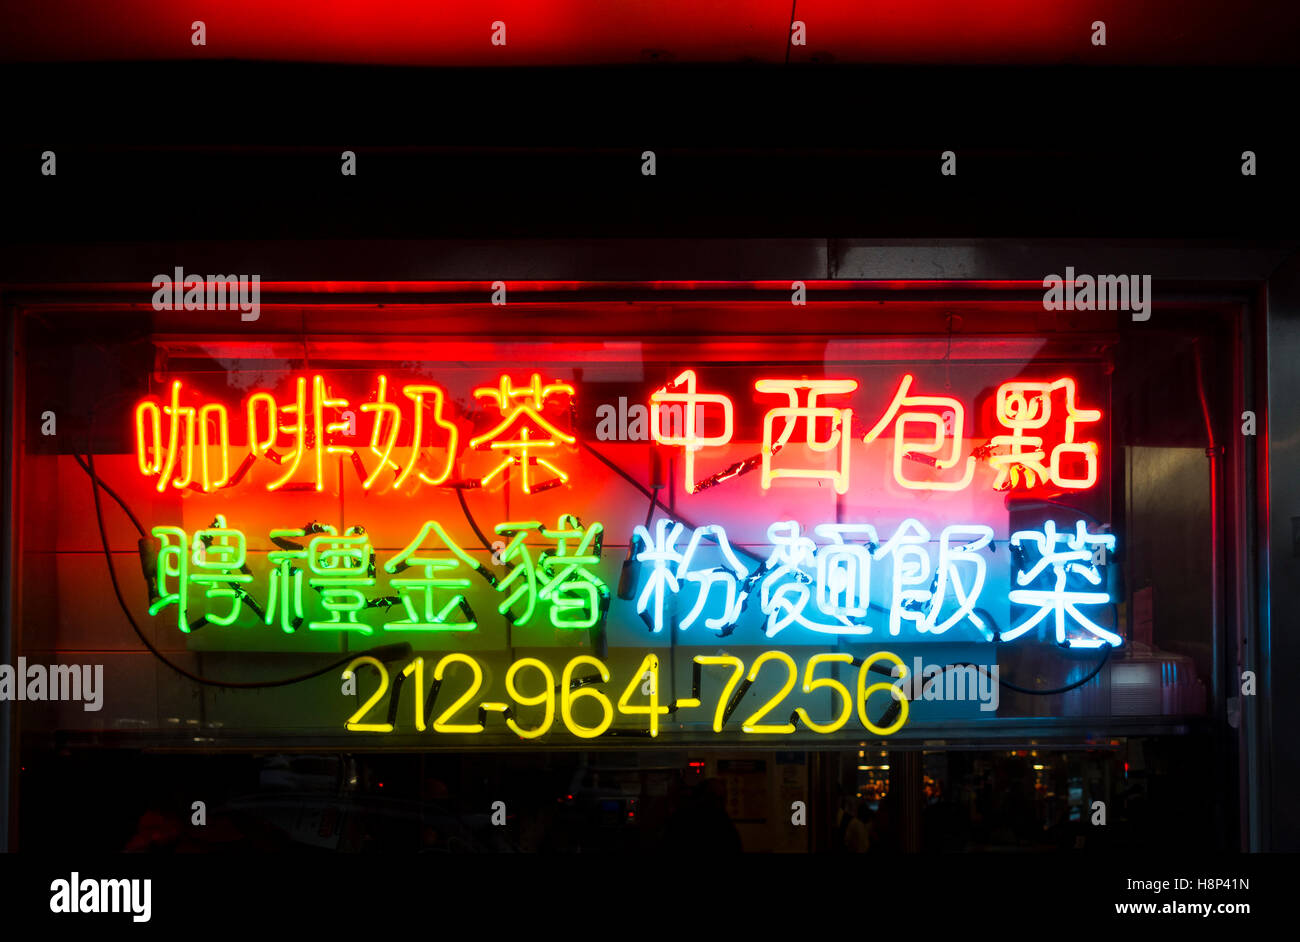 Neon sign in a Chinatown restaurant window in Chinese in New